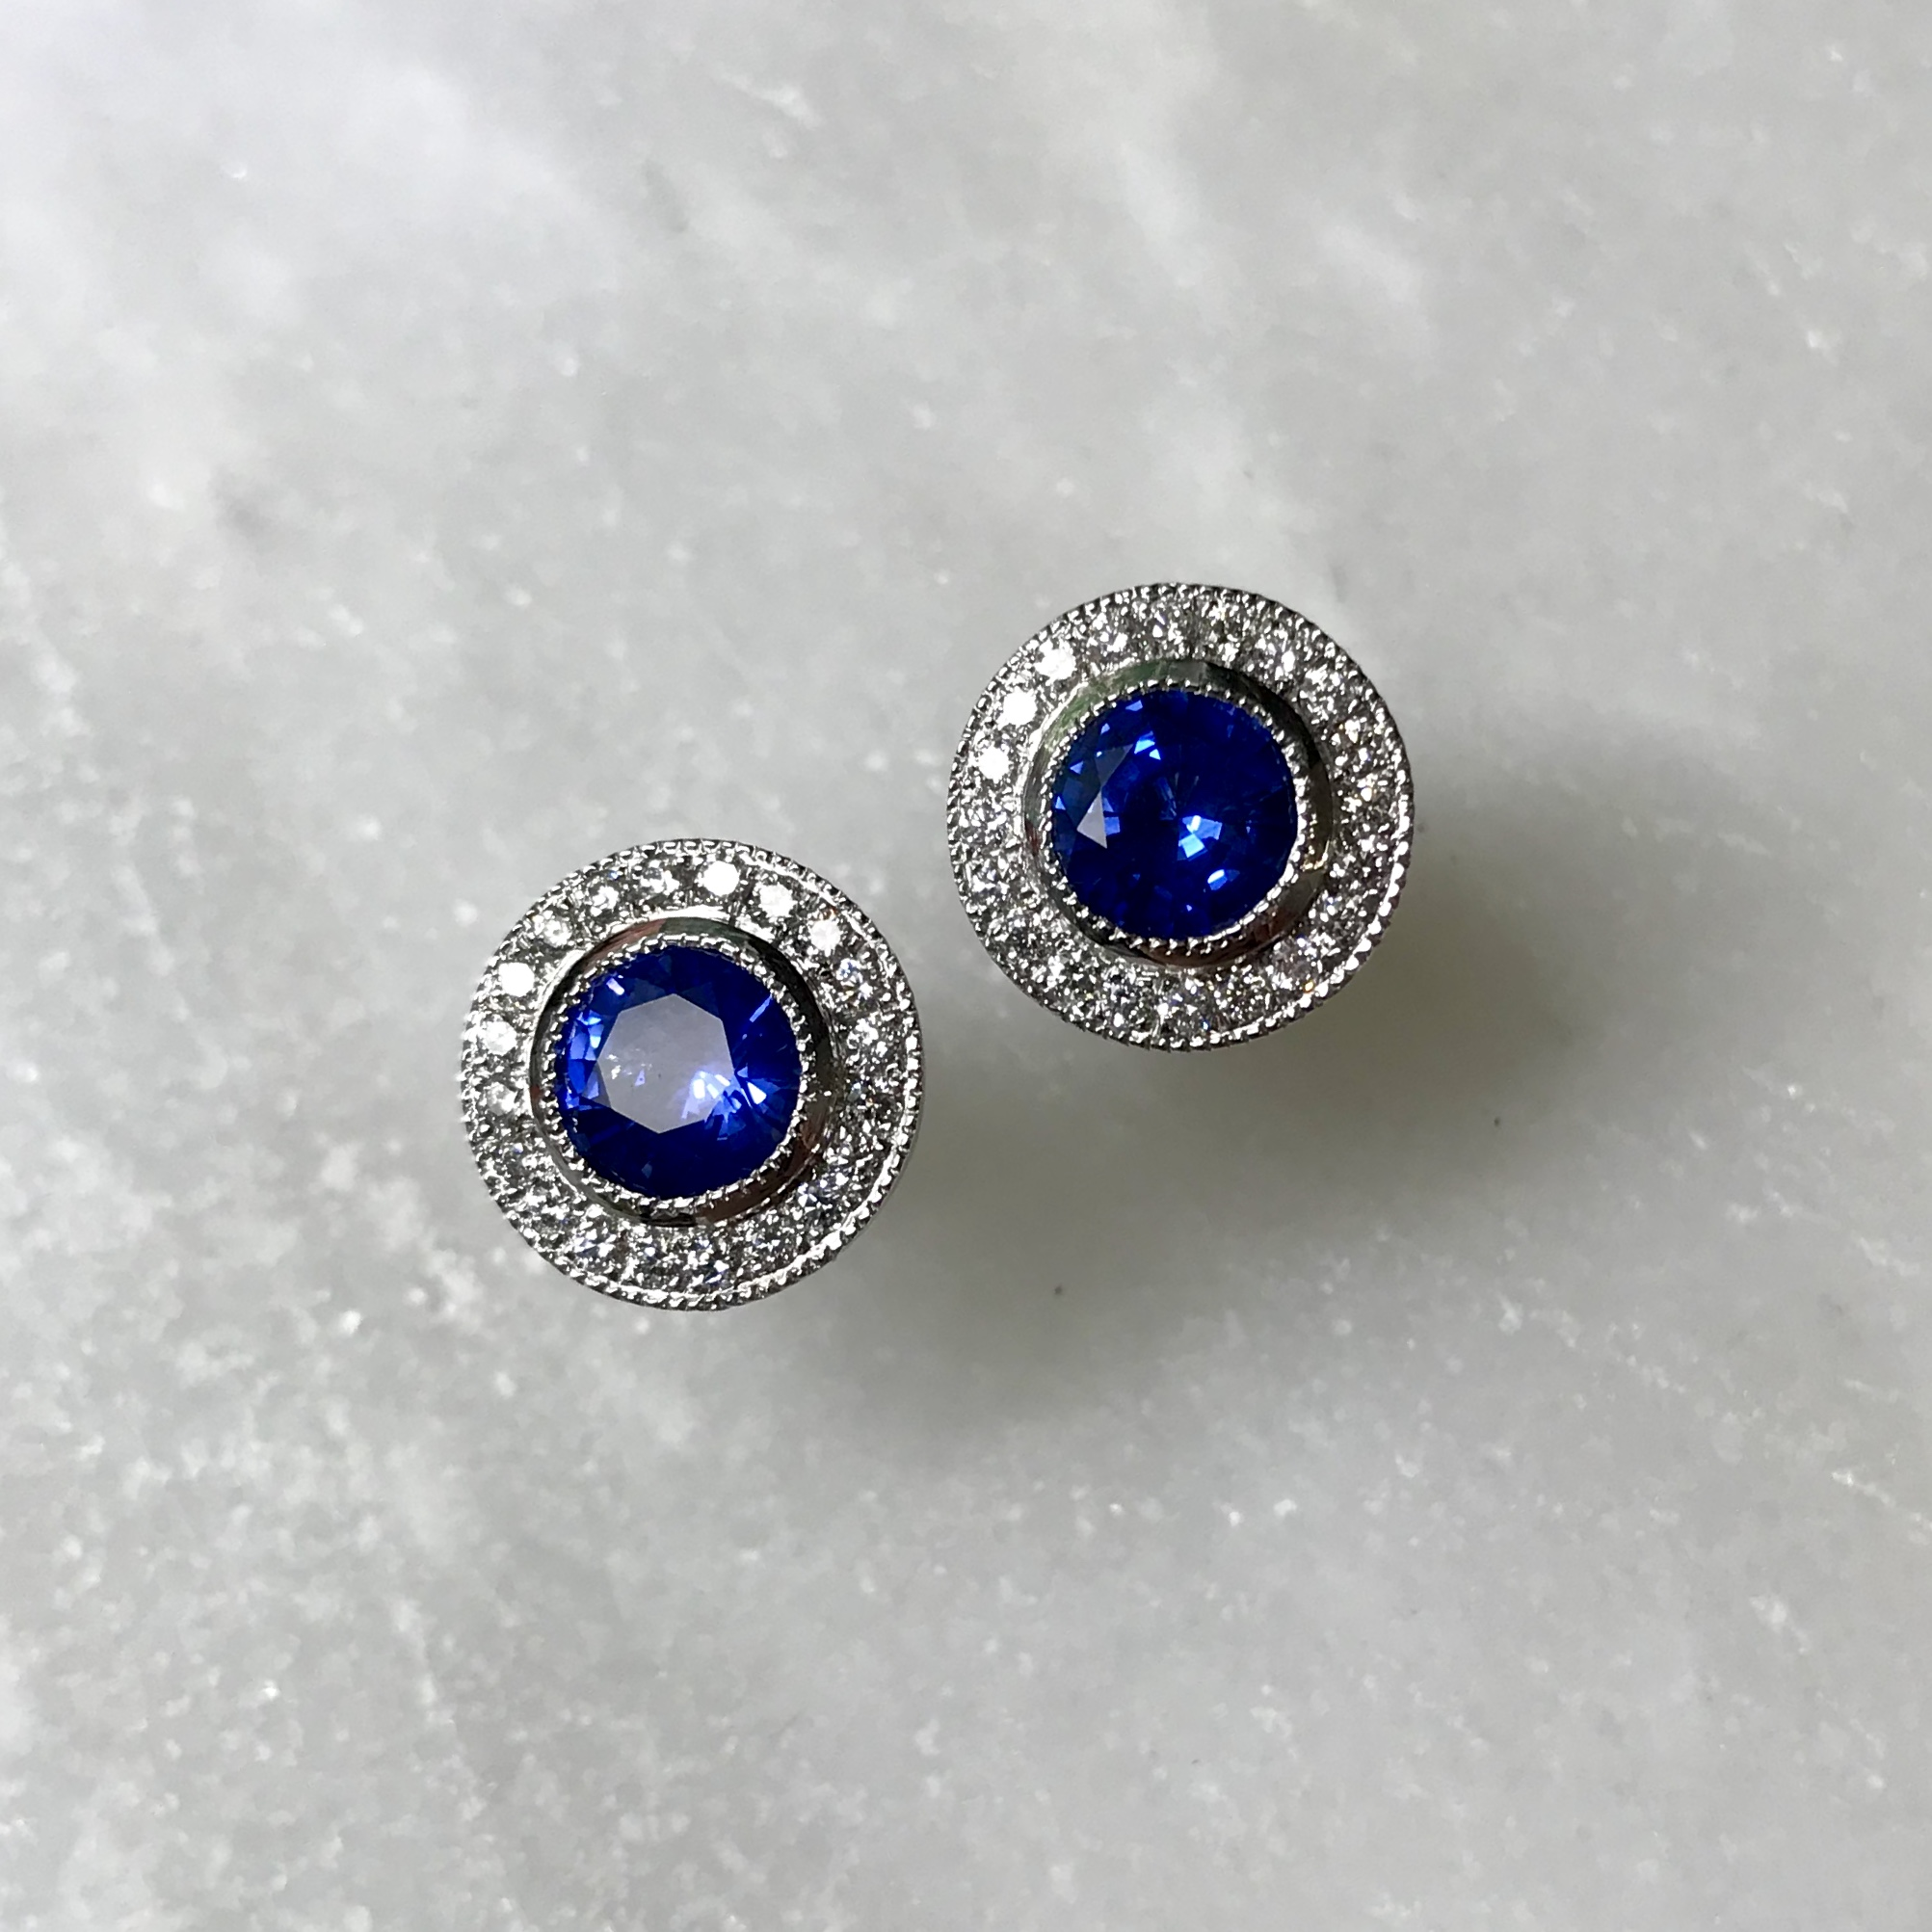 Made to order - Platinum Sapphire and Diamond Halo earrings. Designed to match a previous engagement ring commission.